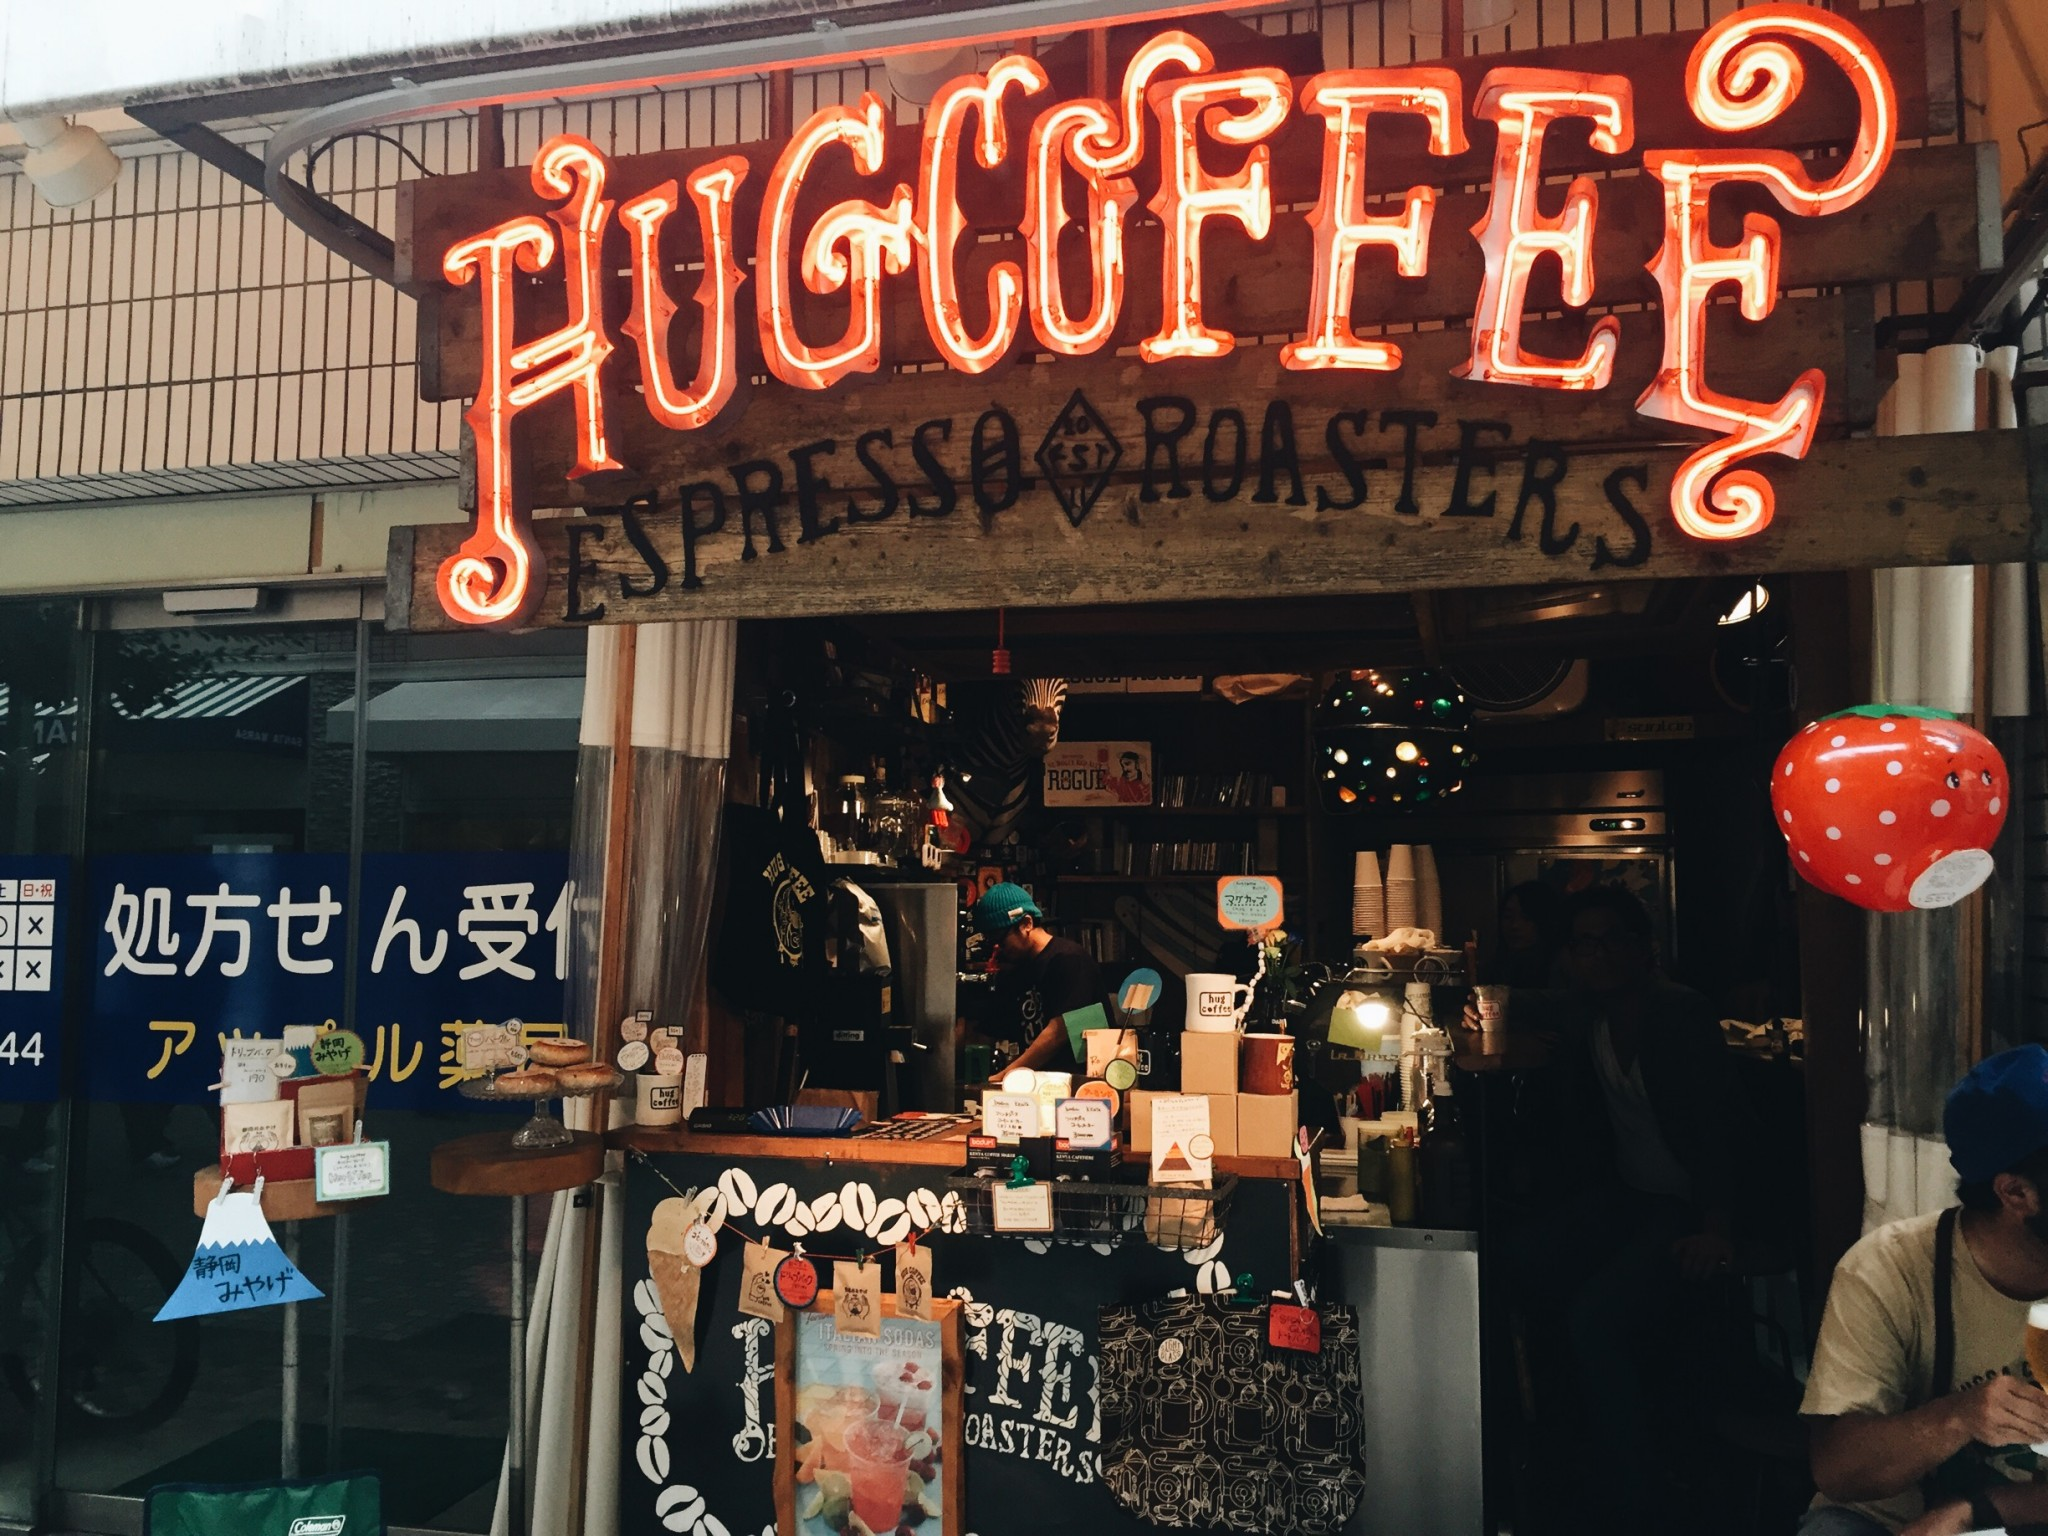 Hug Coffee: where art and artisanal coffee meet